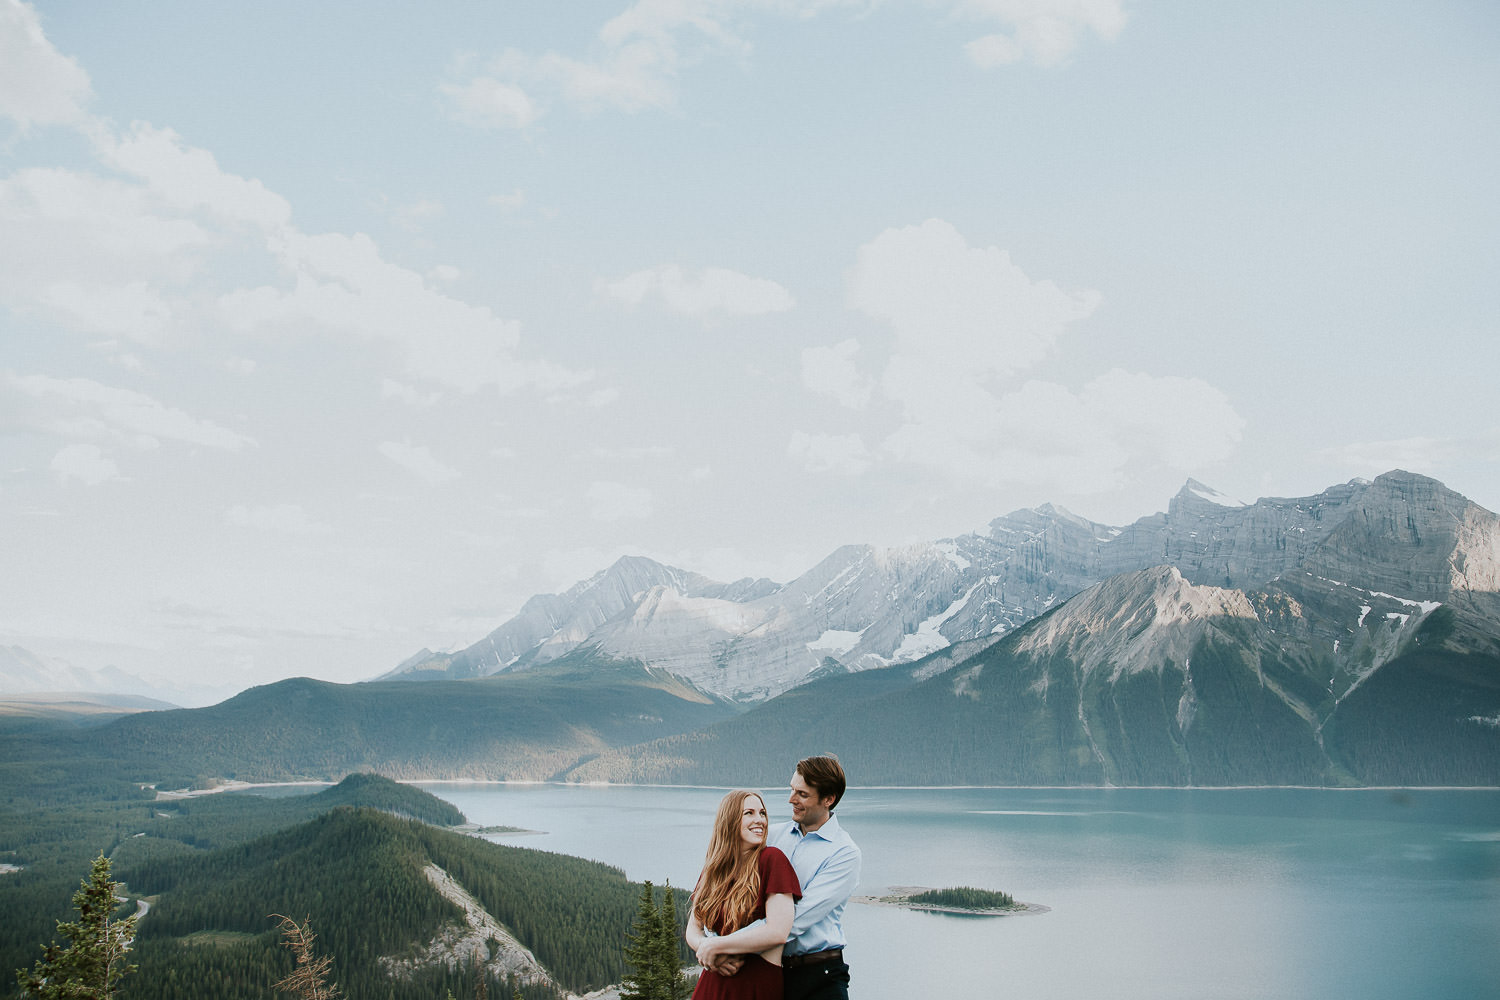 epic views at the top of a mountain for engagement photos - Sarah Pukin